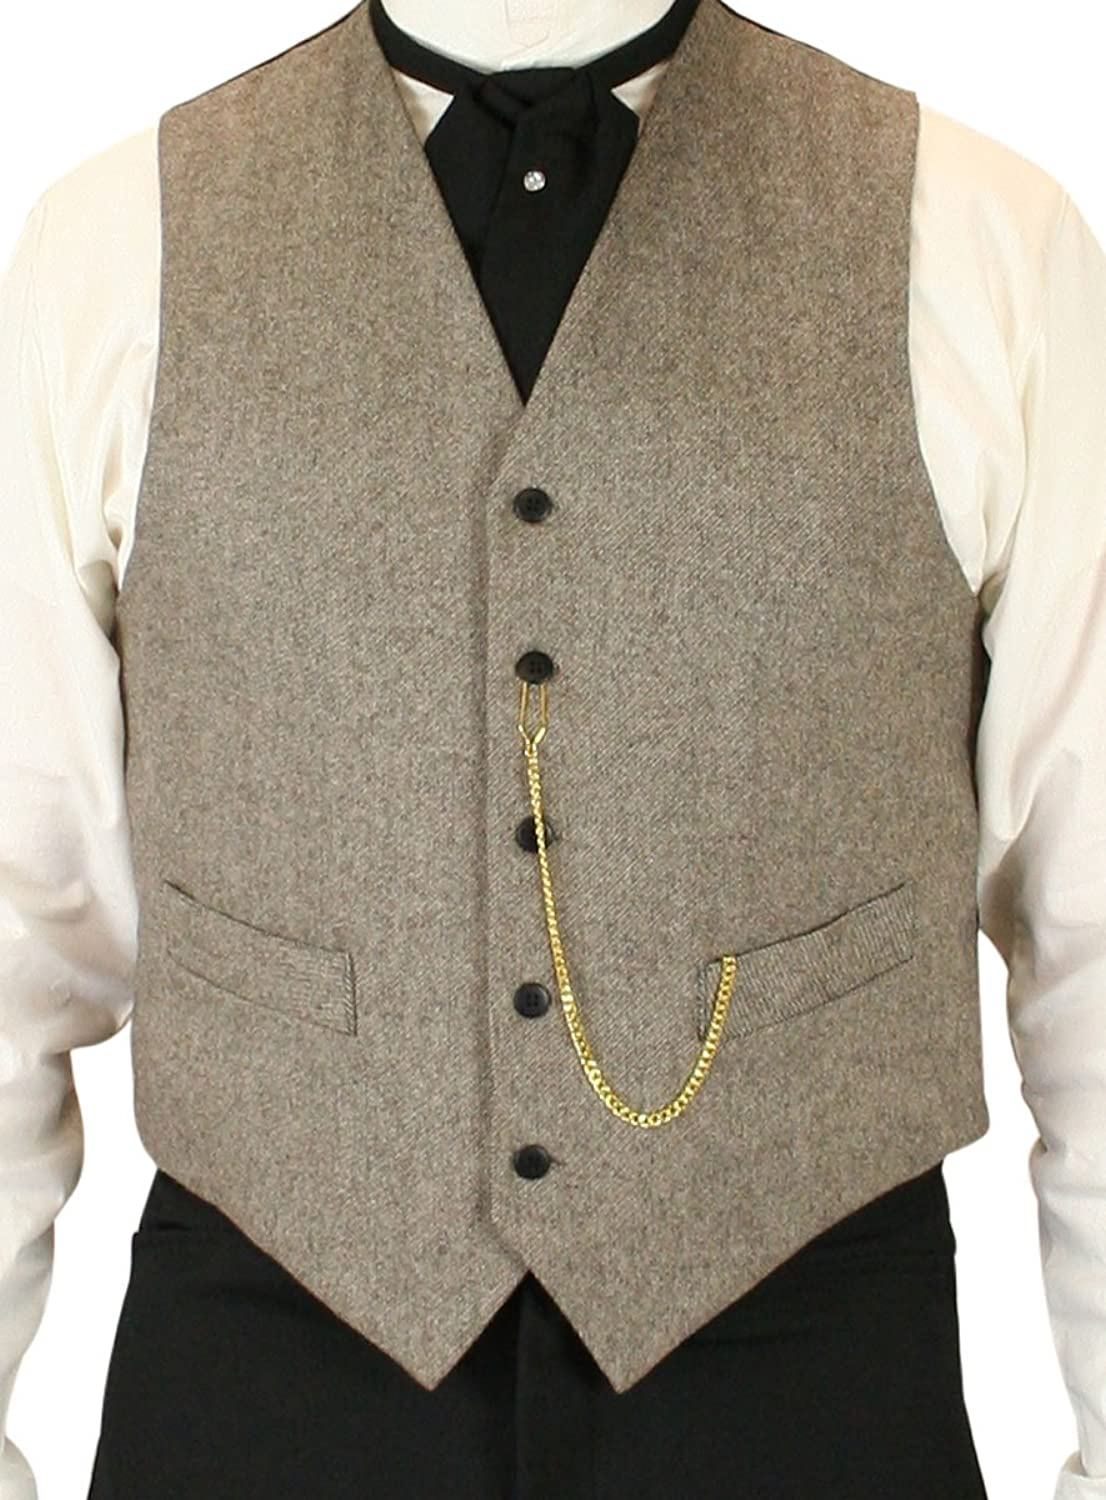 1920s Style Mens Vests  100% Wool Tweed Dress Vest Historical Emporium Mens Peabody $68.95 AT vintagedancer.com